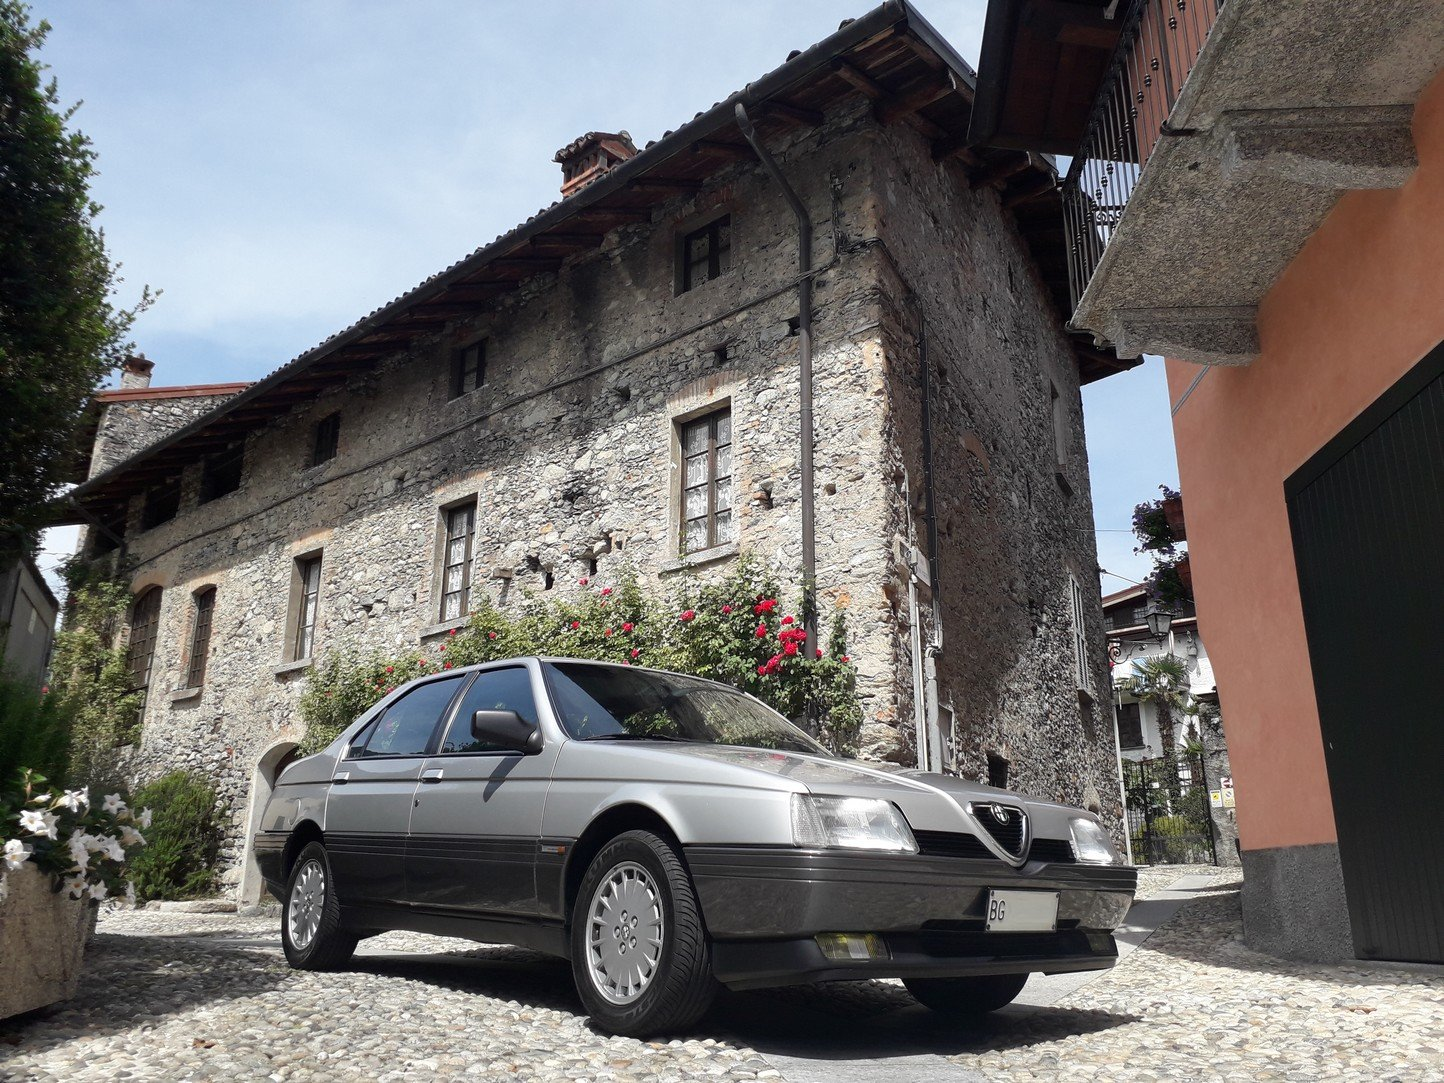 1988 As new alfa 164 3.0 V6 with 64 k km! For Sale (picture 1 of 6)